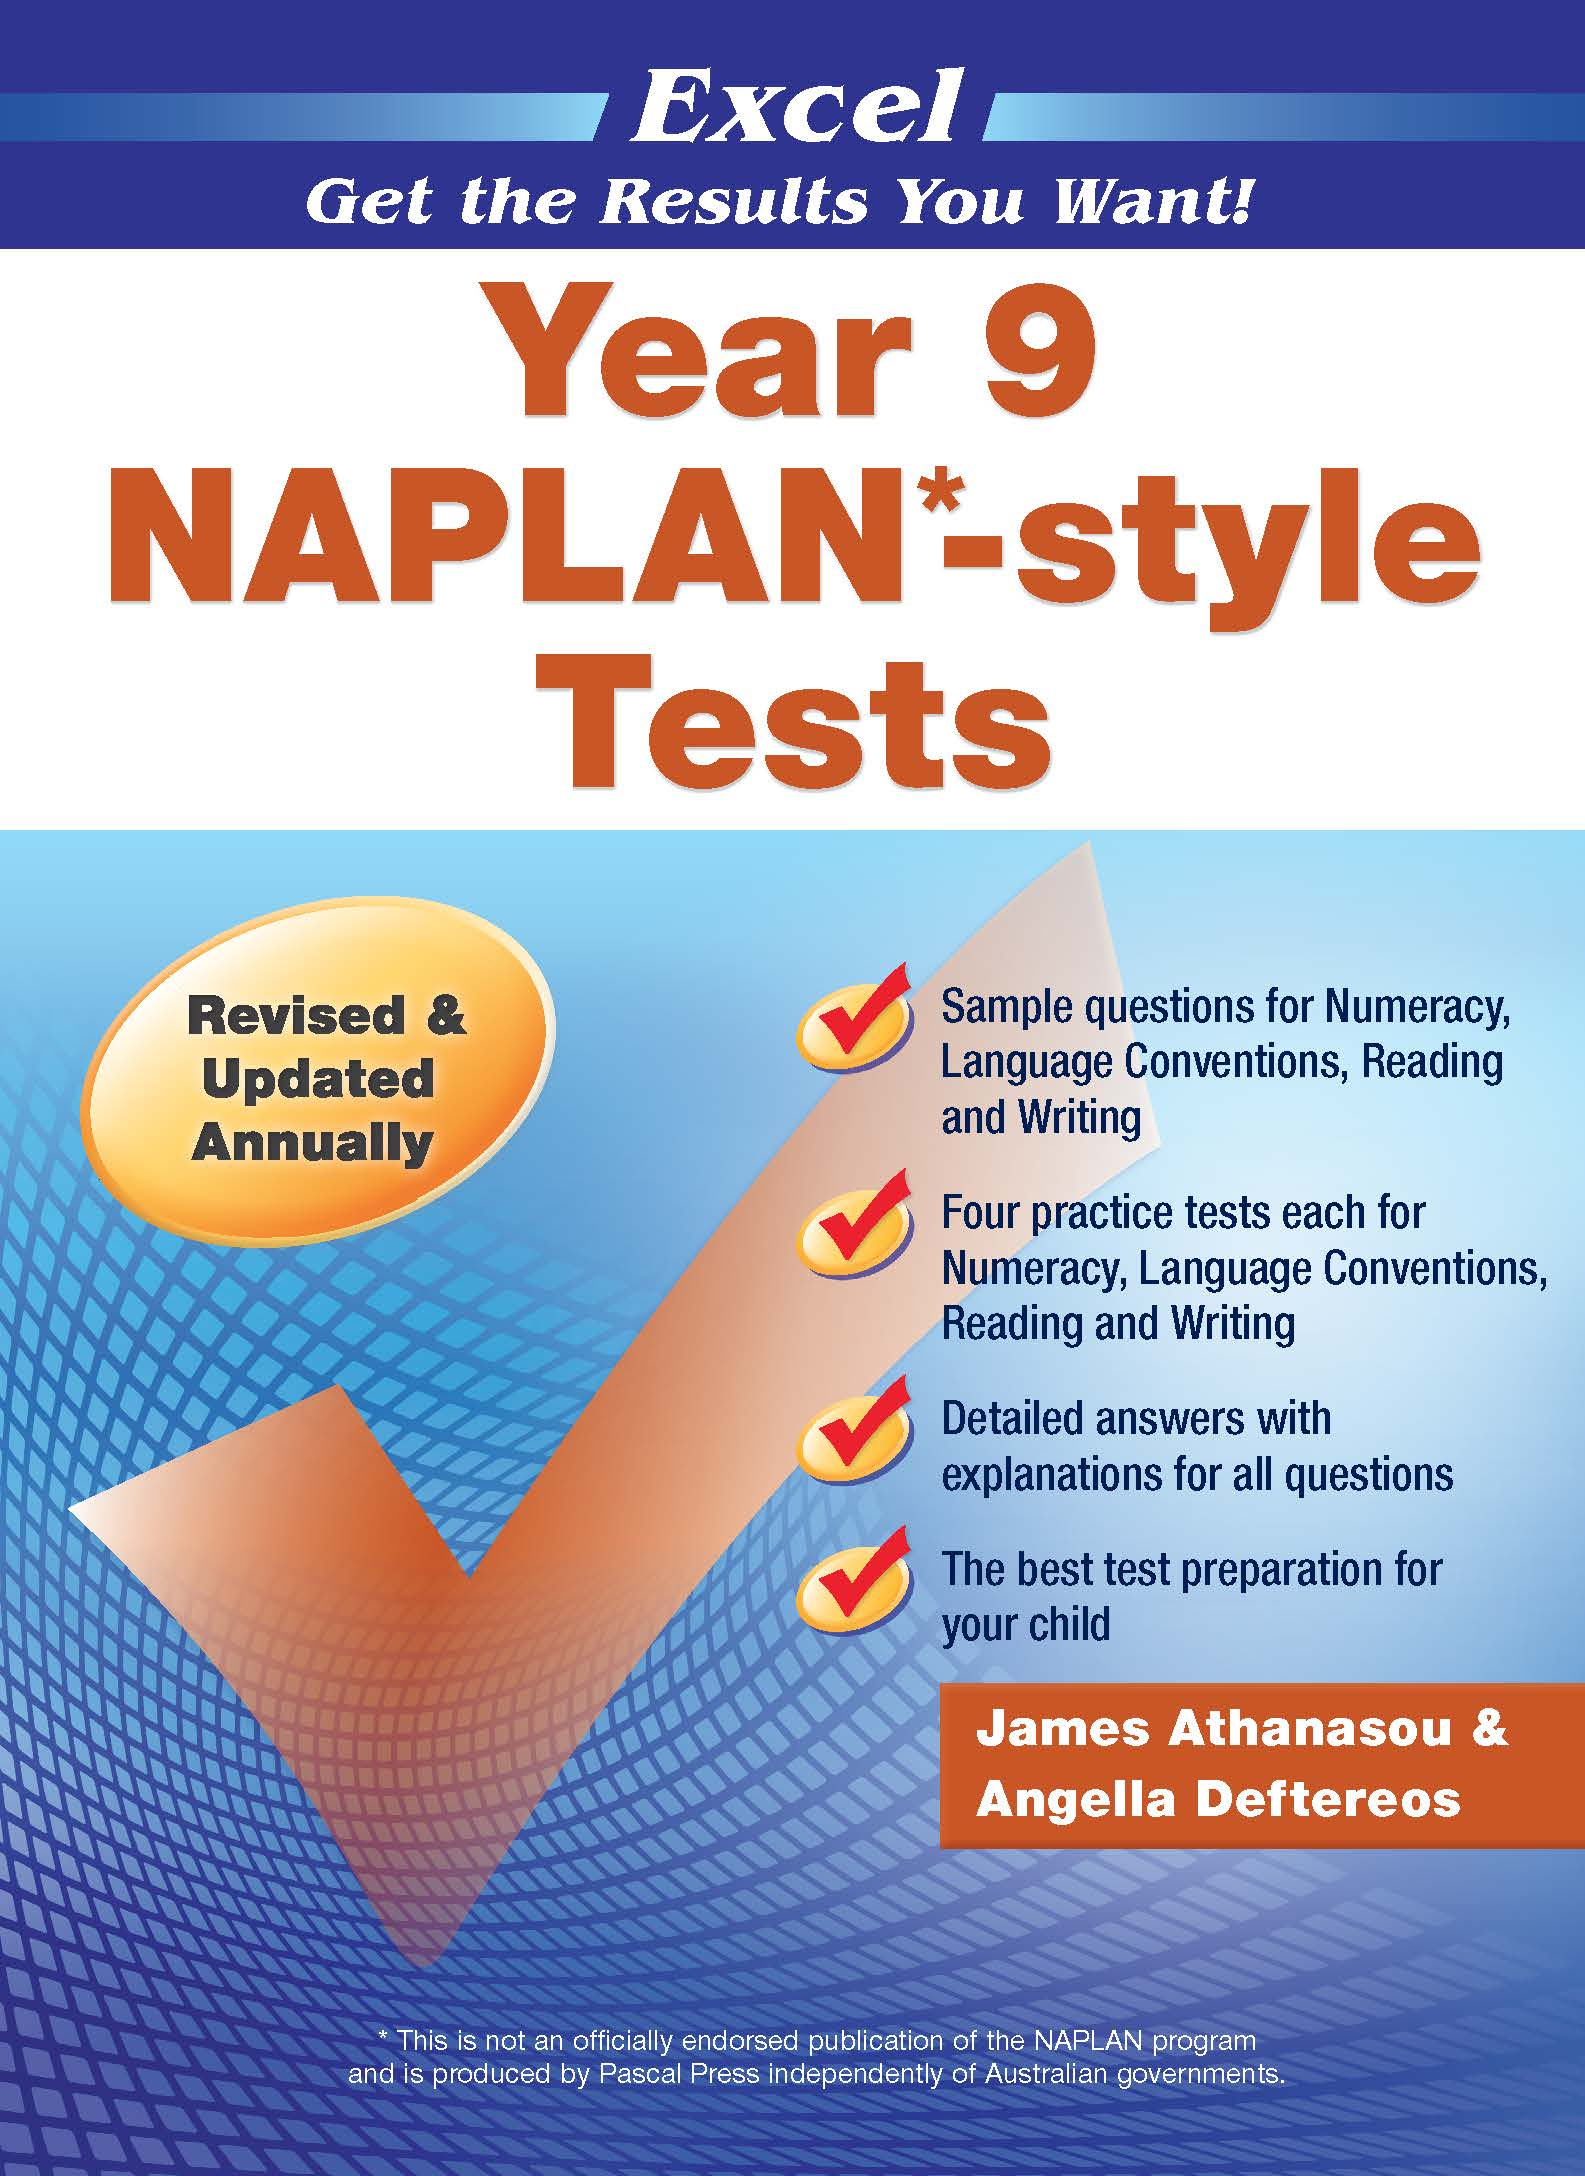 Excel NAPLAN*-style Tests Year 9